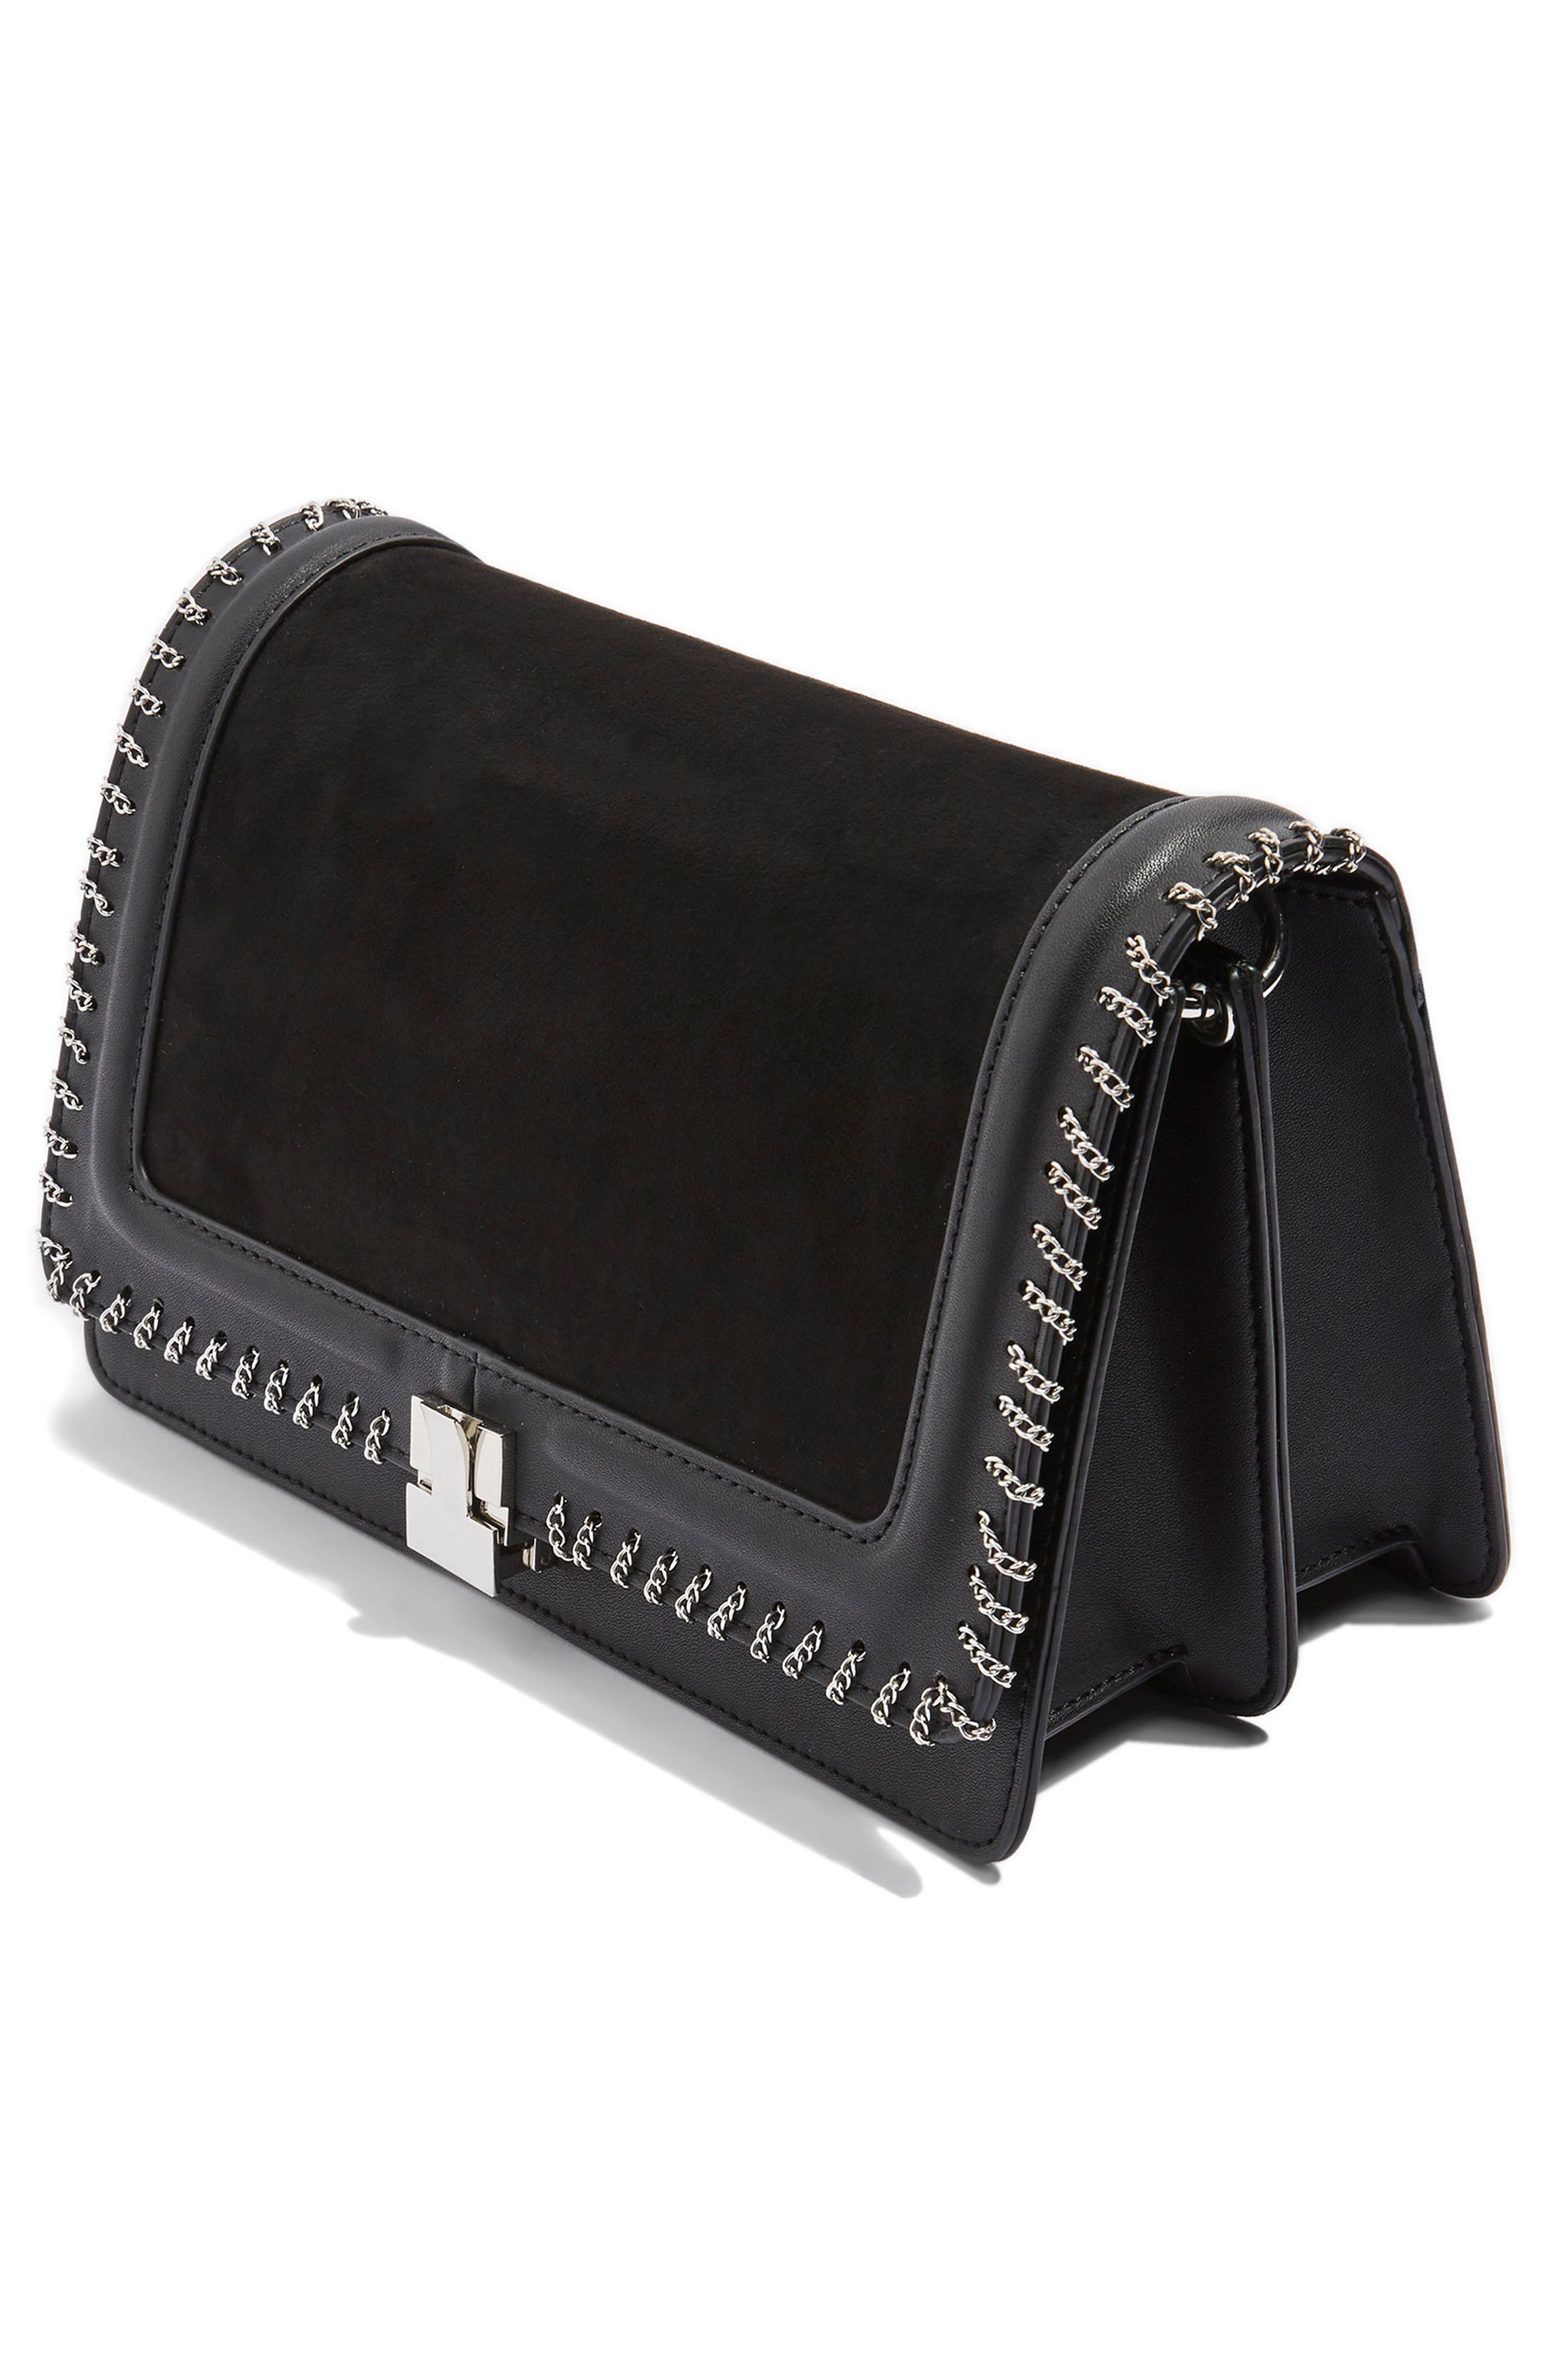 Chain Flap Shoulder Bag,                             Alternate thumbnail 3, color,                             Black Multi